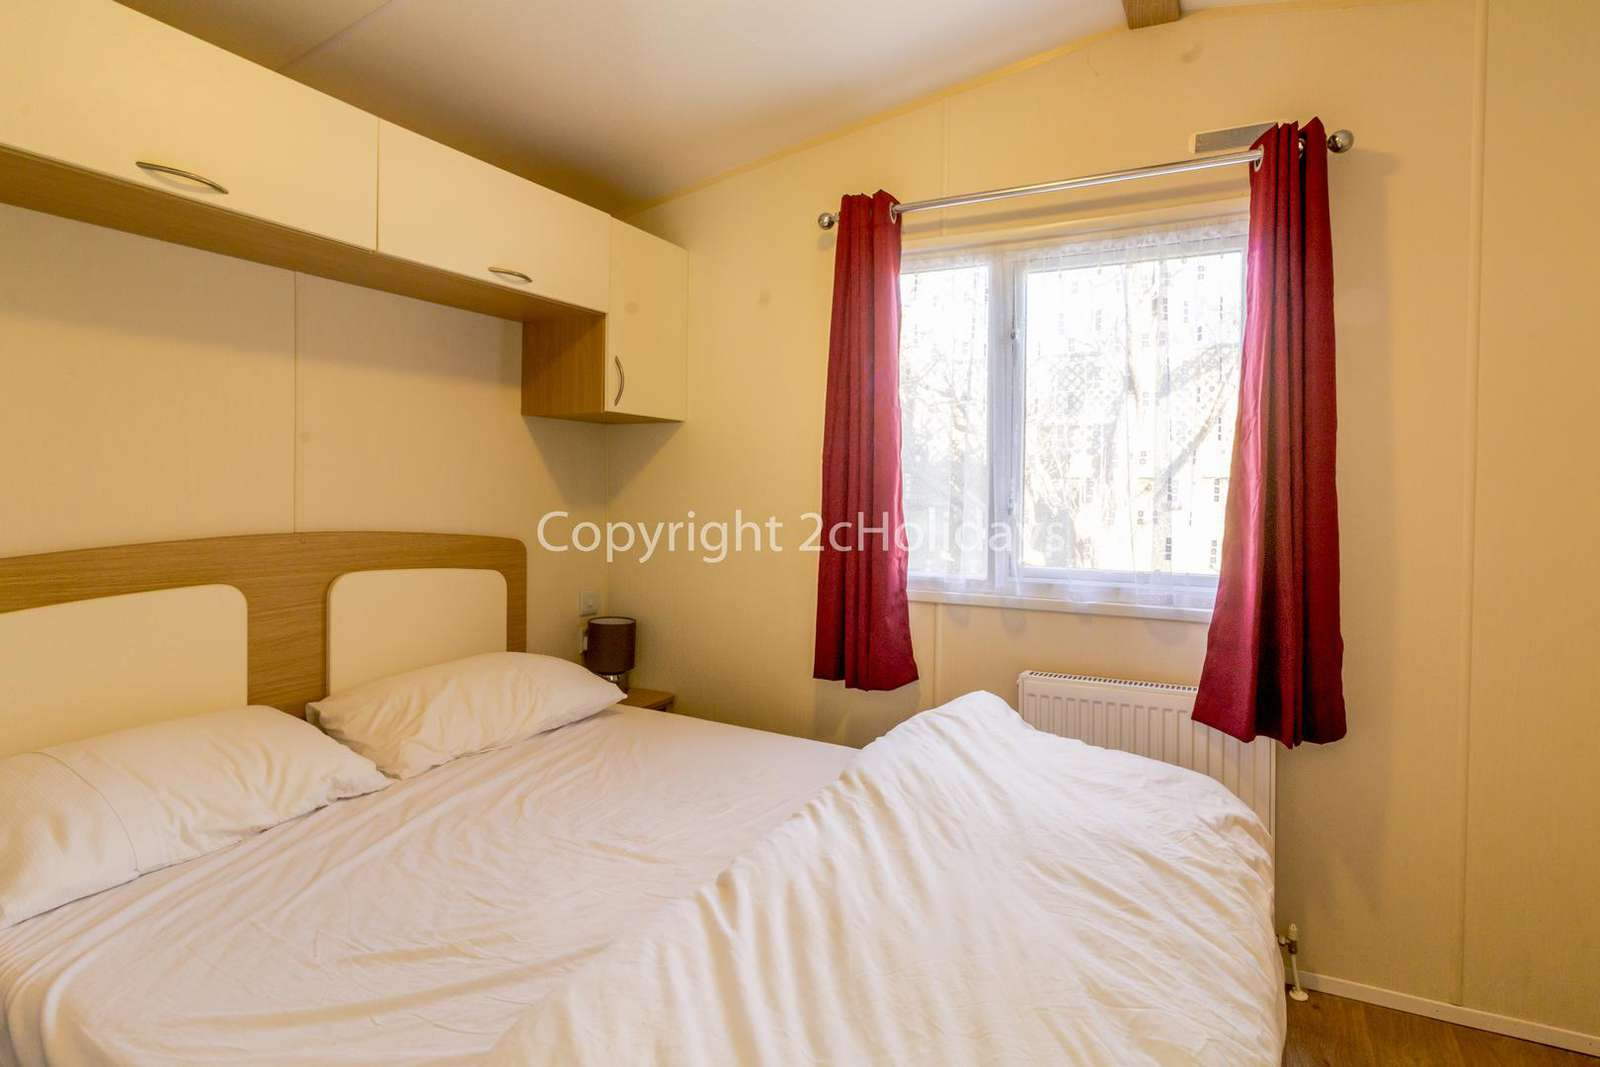 You can find plenty of storage in this master bedroom as well as an en-suite!